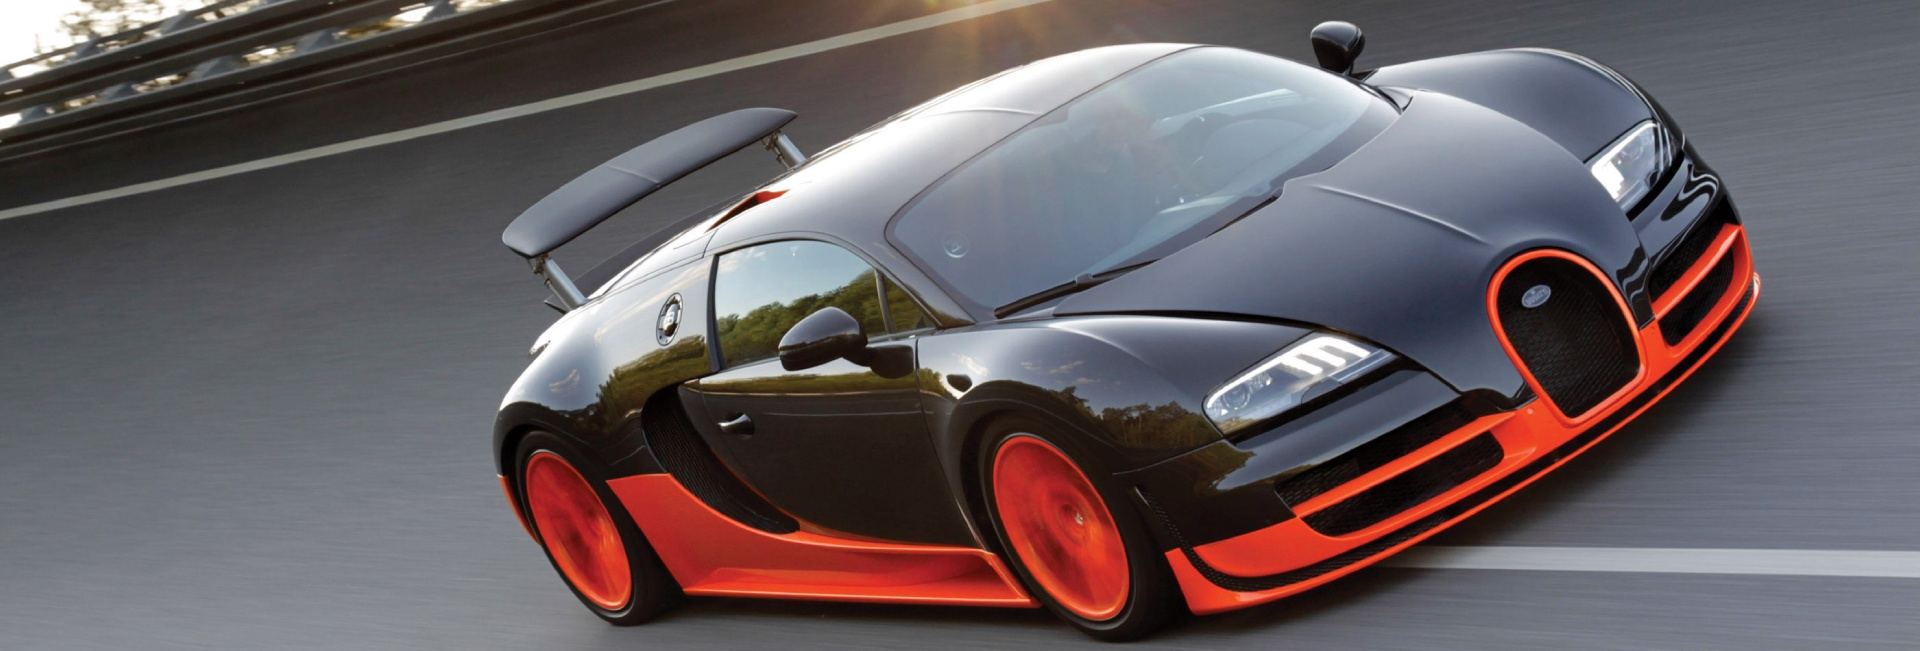 0 BUGATTI VEYRON SUPER SPORTS